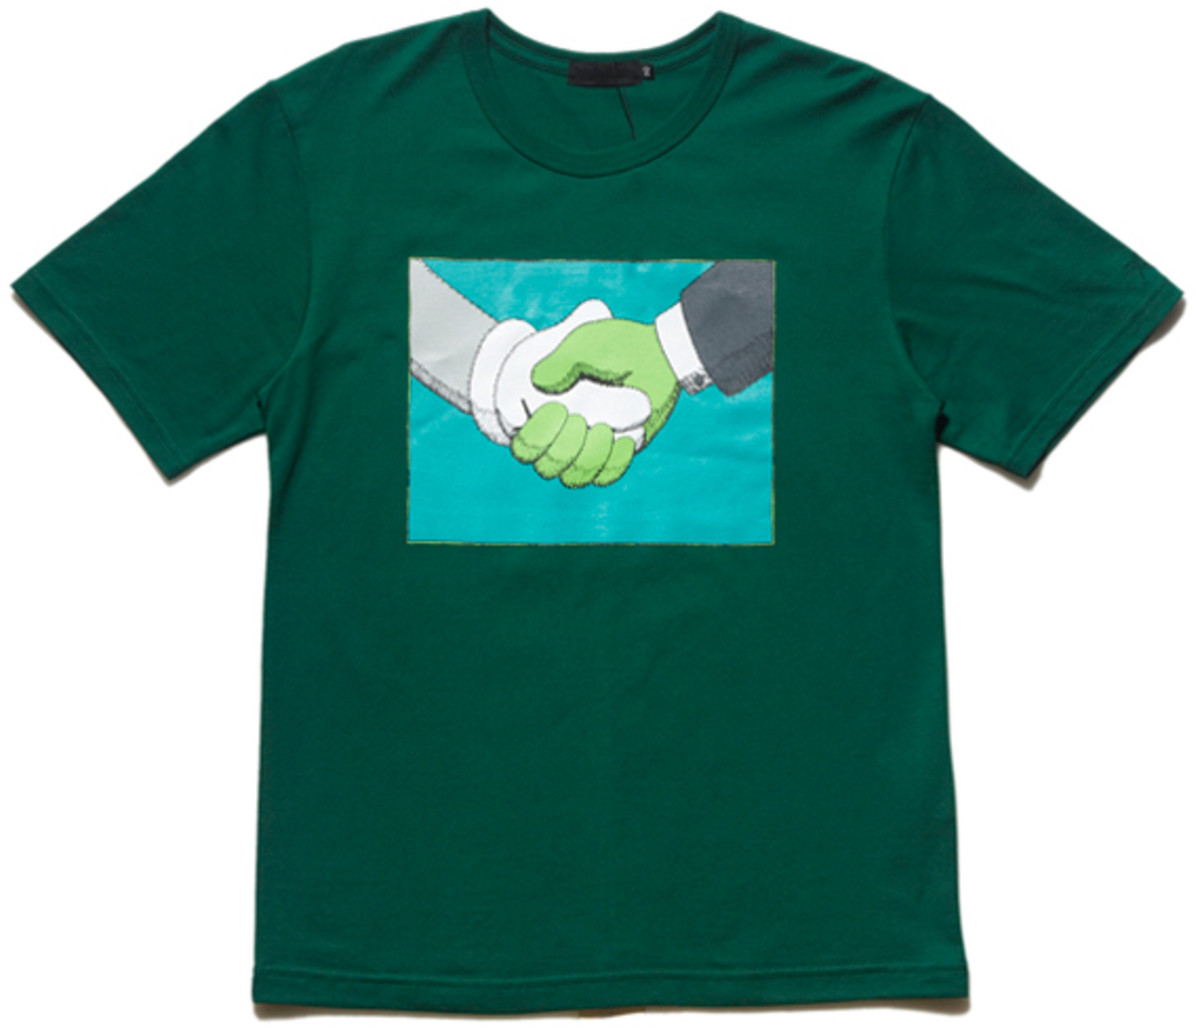 original-fake-better-wash-your-hand-tee-03